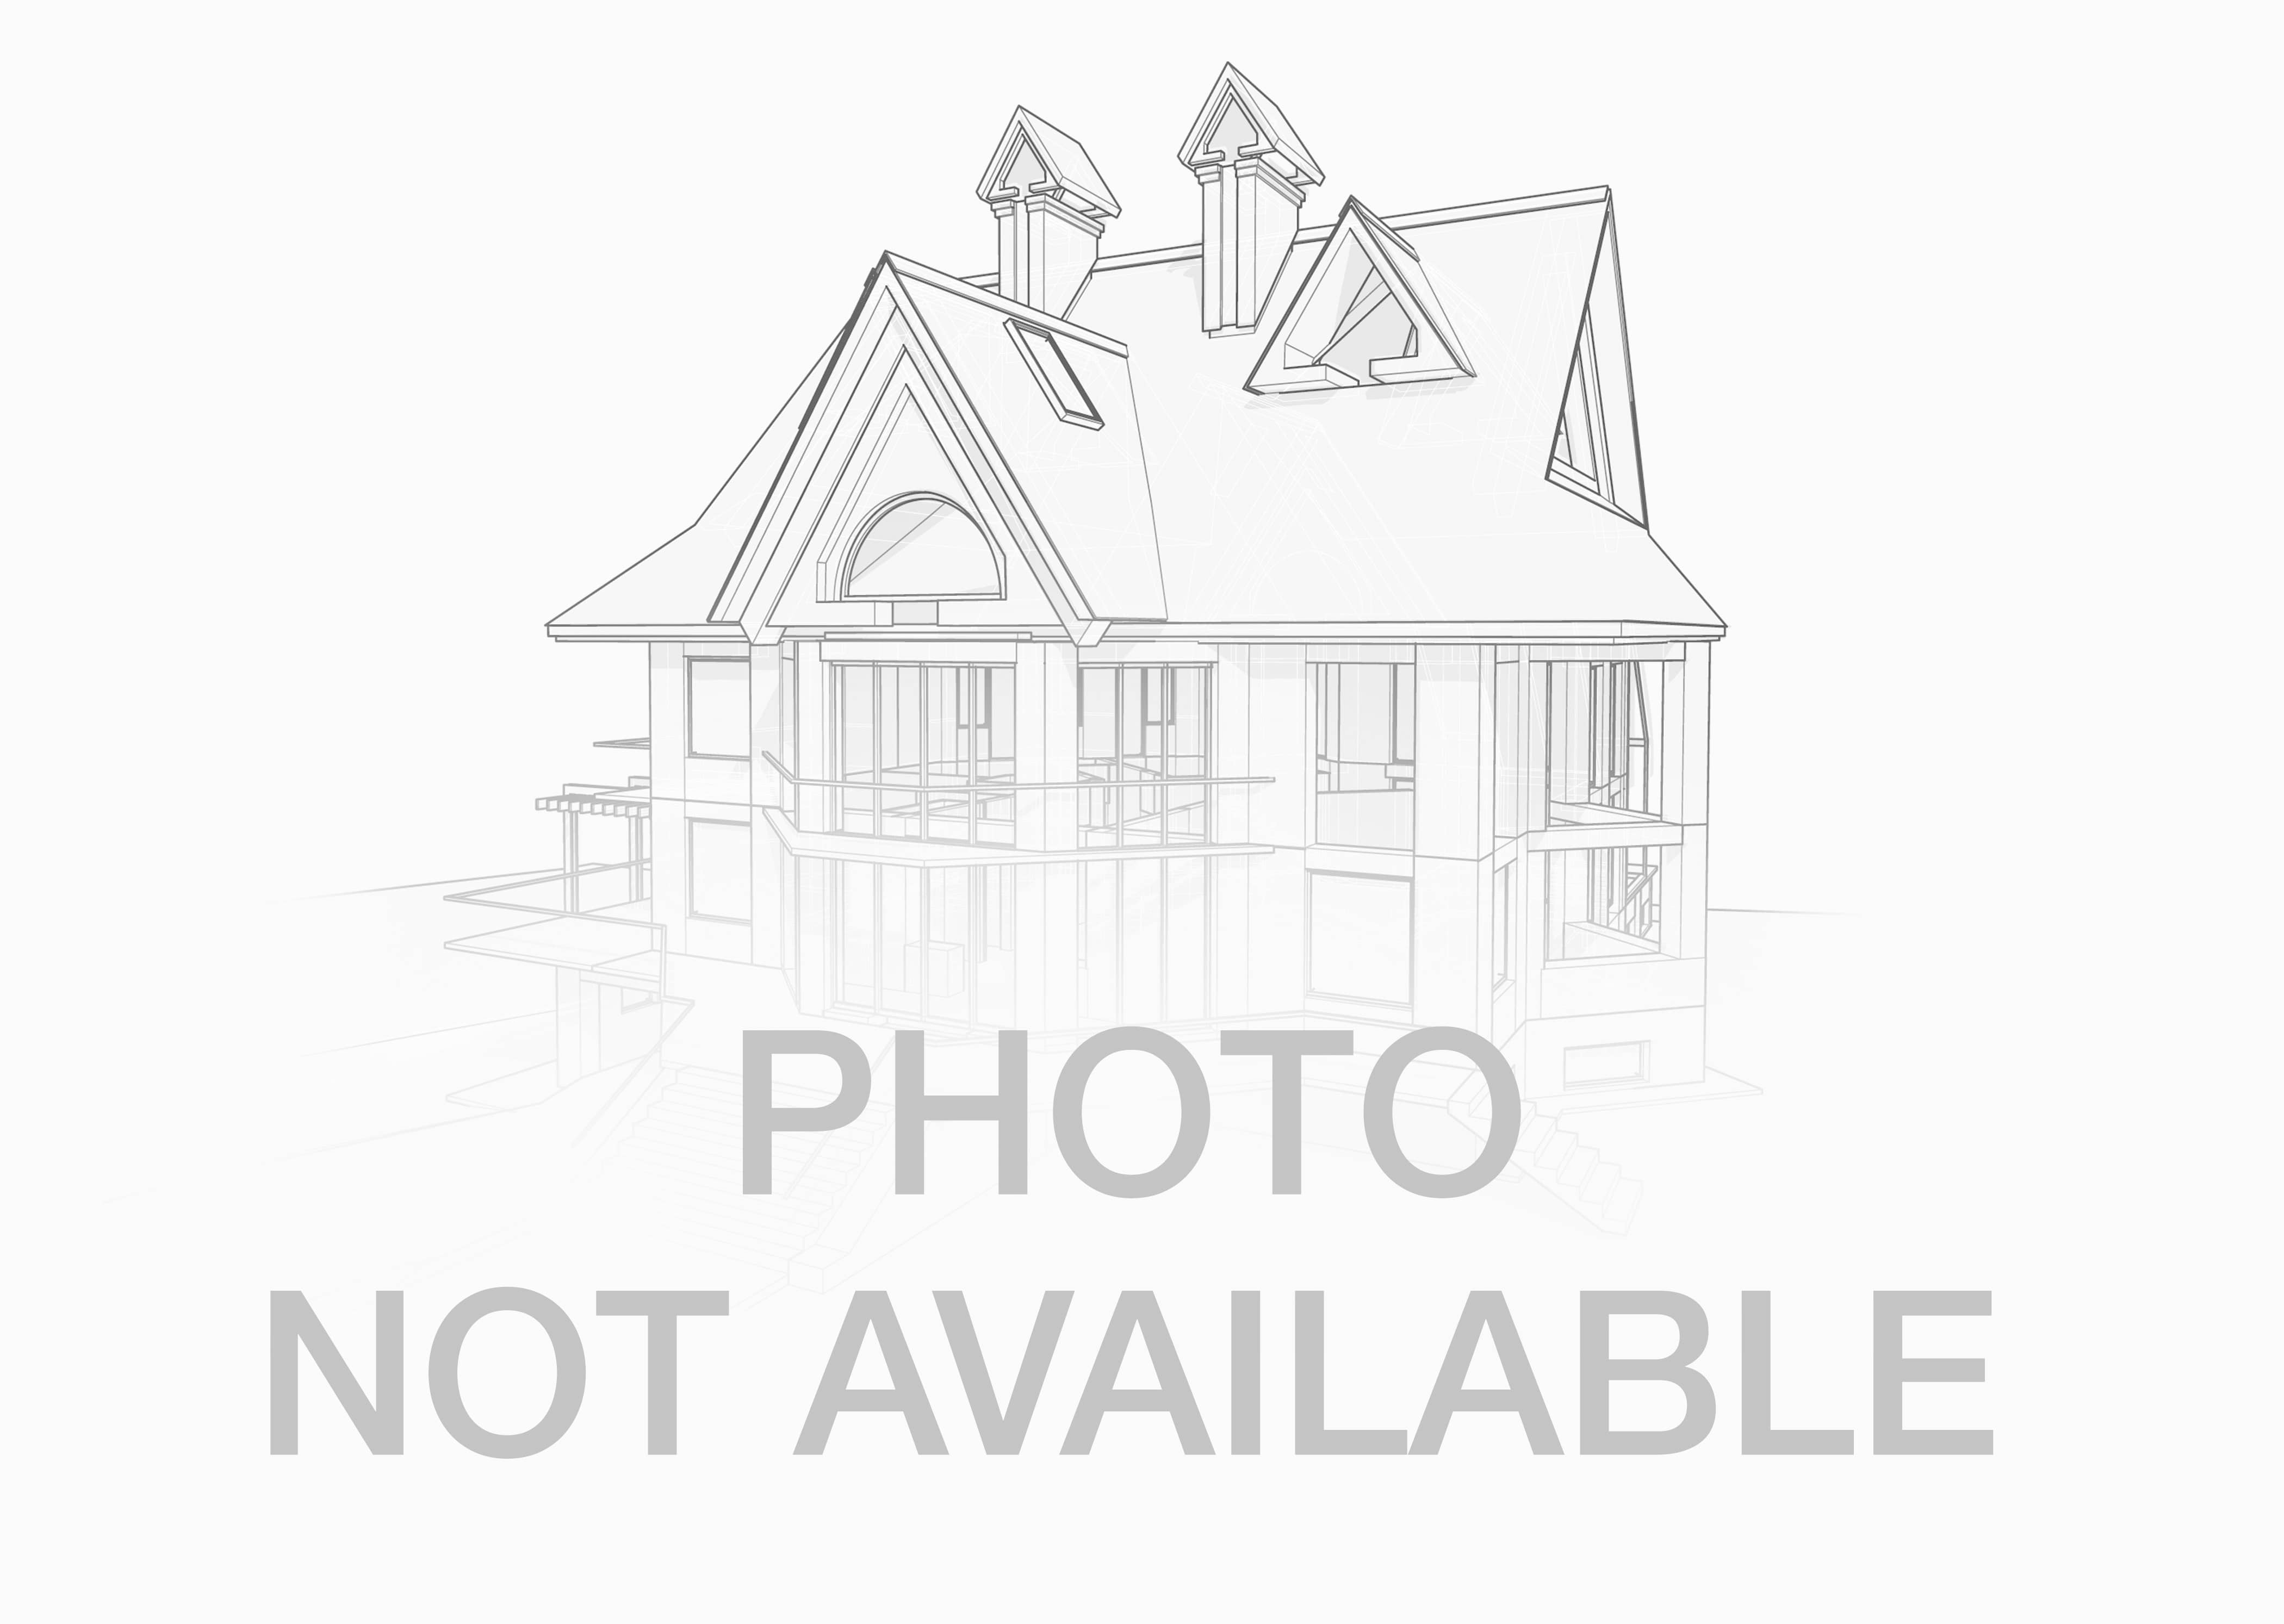 Outstanding Homes For Sale Huntington Woods Mi Adornment - Home ...